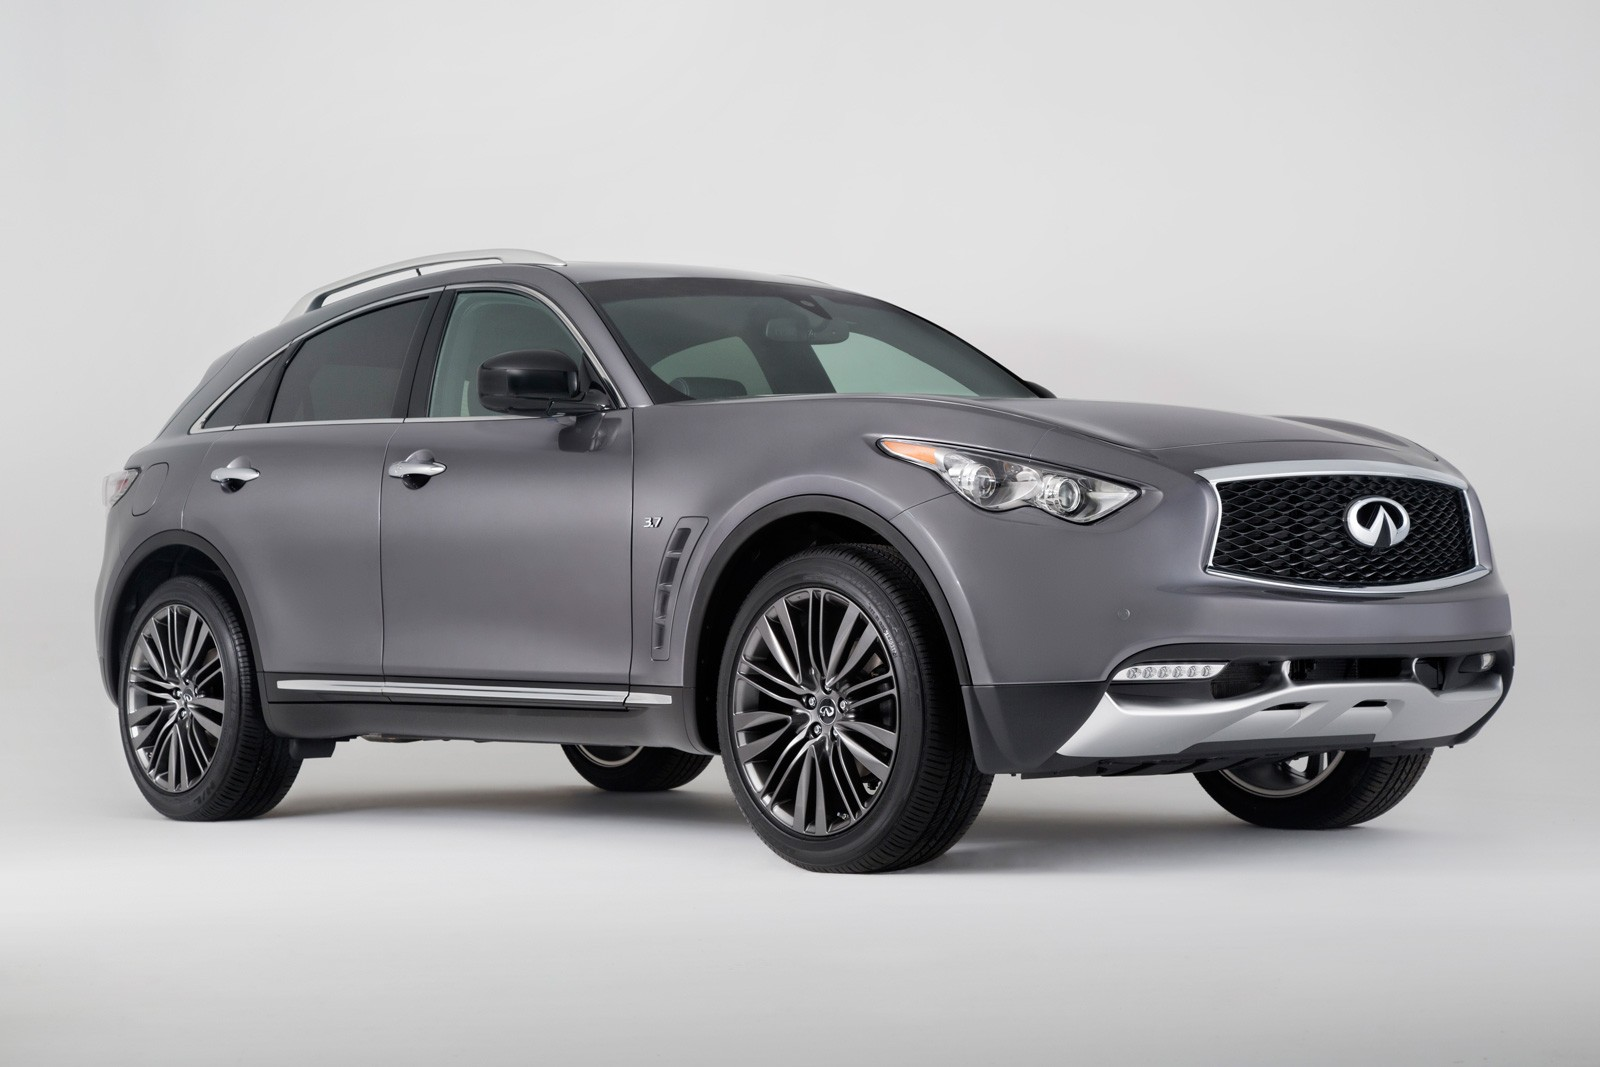 Q70 For Sale >> Top 10 Best Looking Crossovers and SUVs of 2017 ...